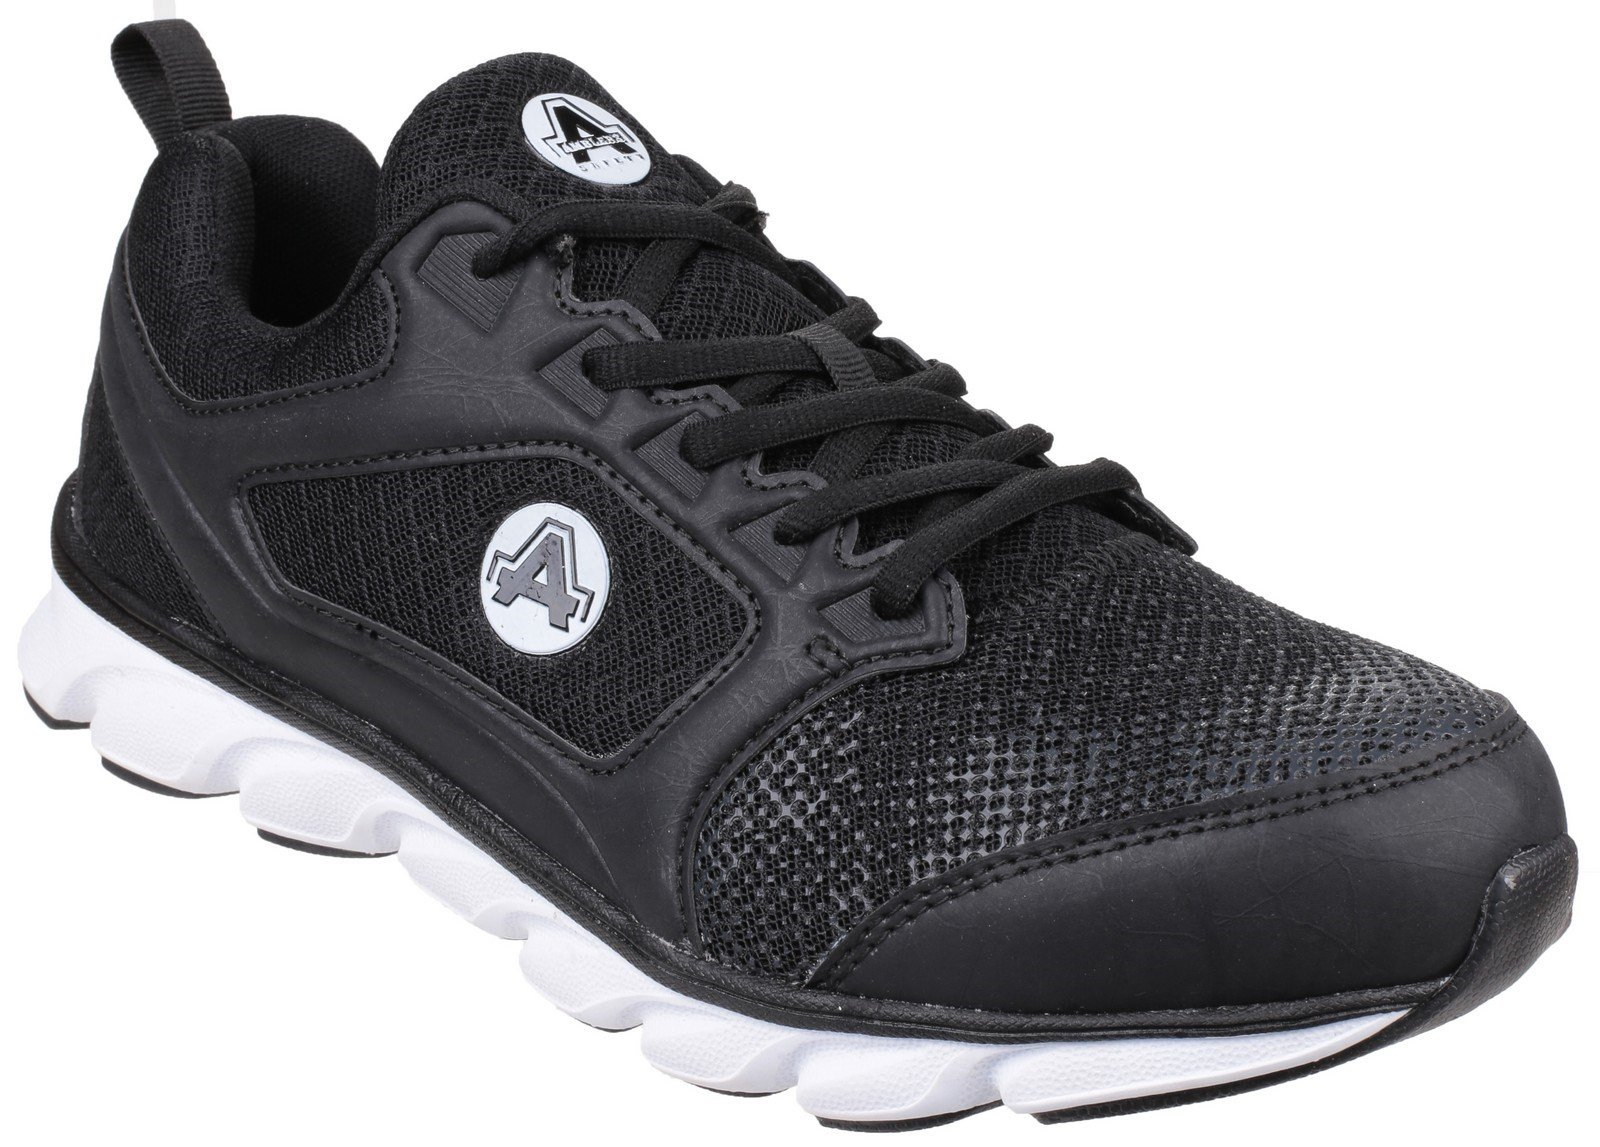 Amblers Unisex Safety Lightweight Non Leather Trainer Various CO - Black 6